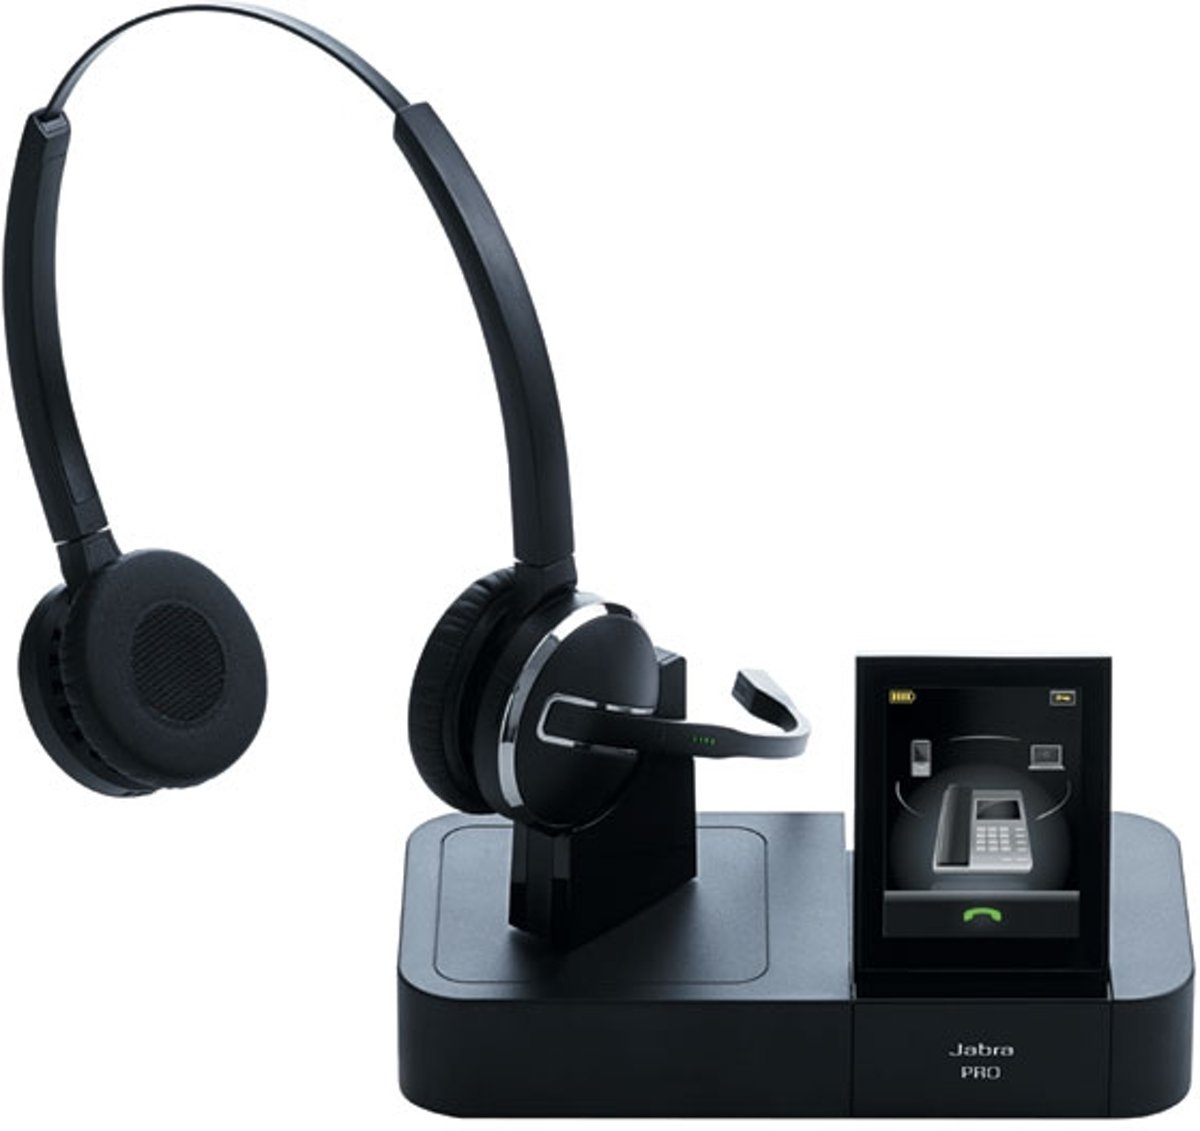 GN Jabra Pro 9460 Pro touchscreen wireless duo headset